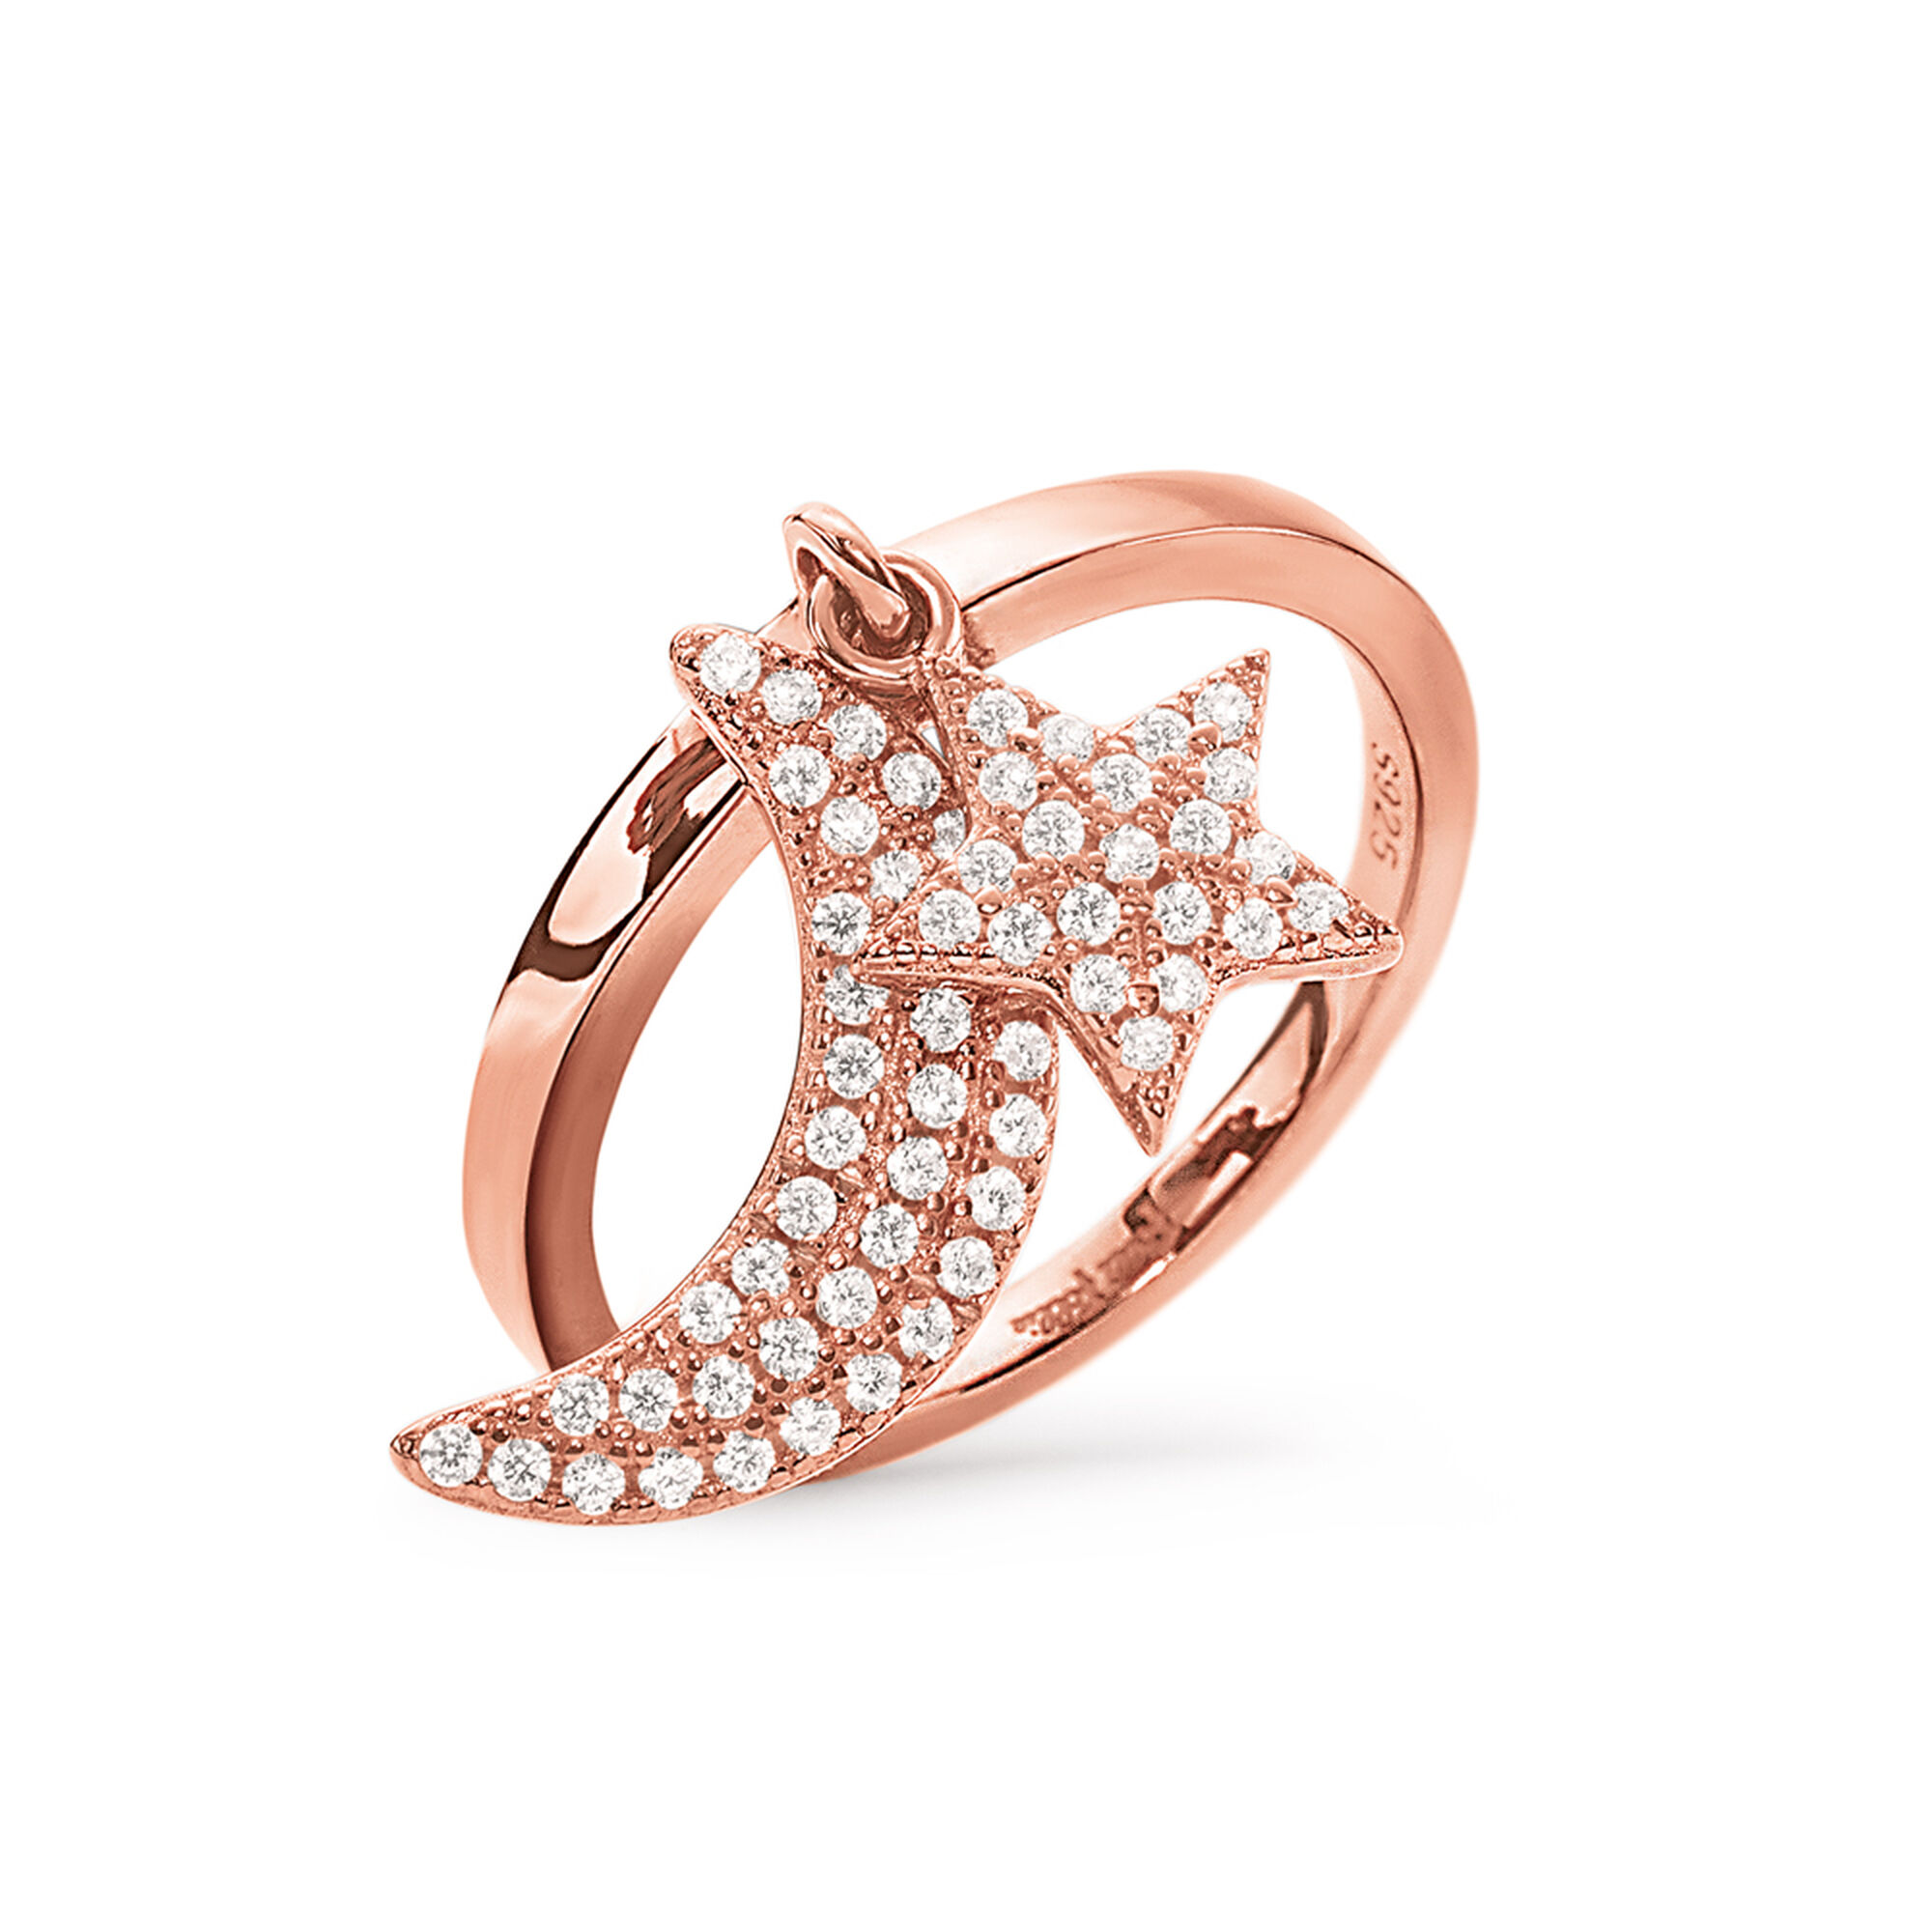 Folli Follie Charm Mates Rose Gold Plated Ring